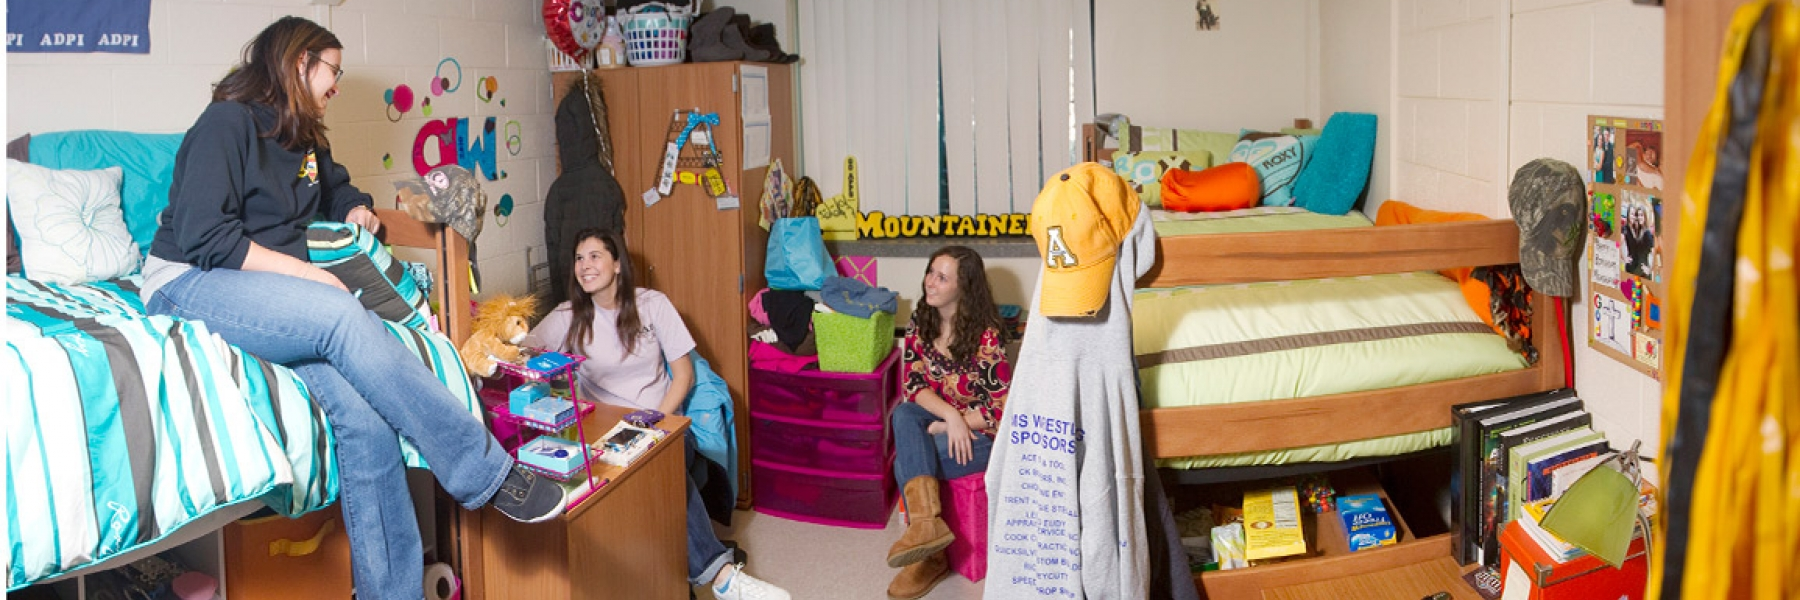 Students in ASU dorm room